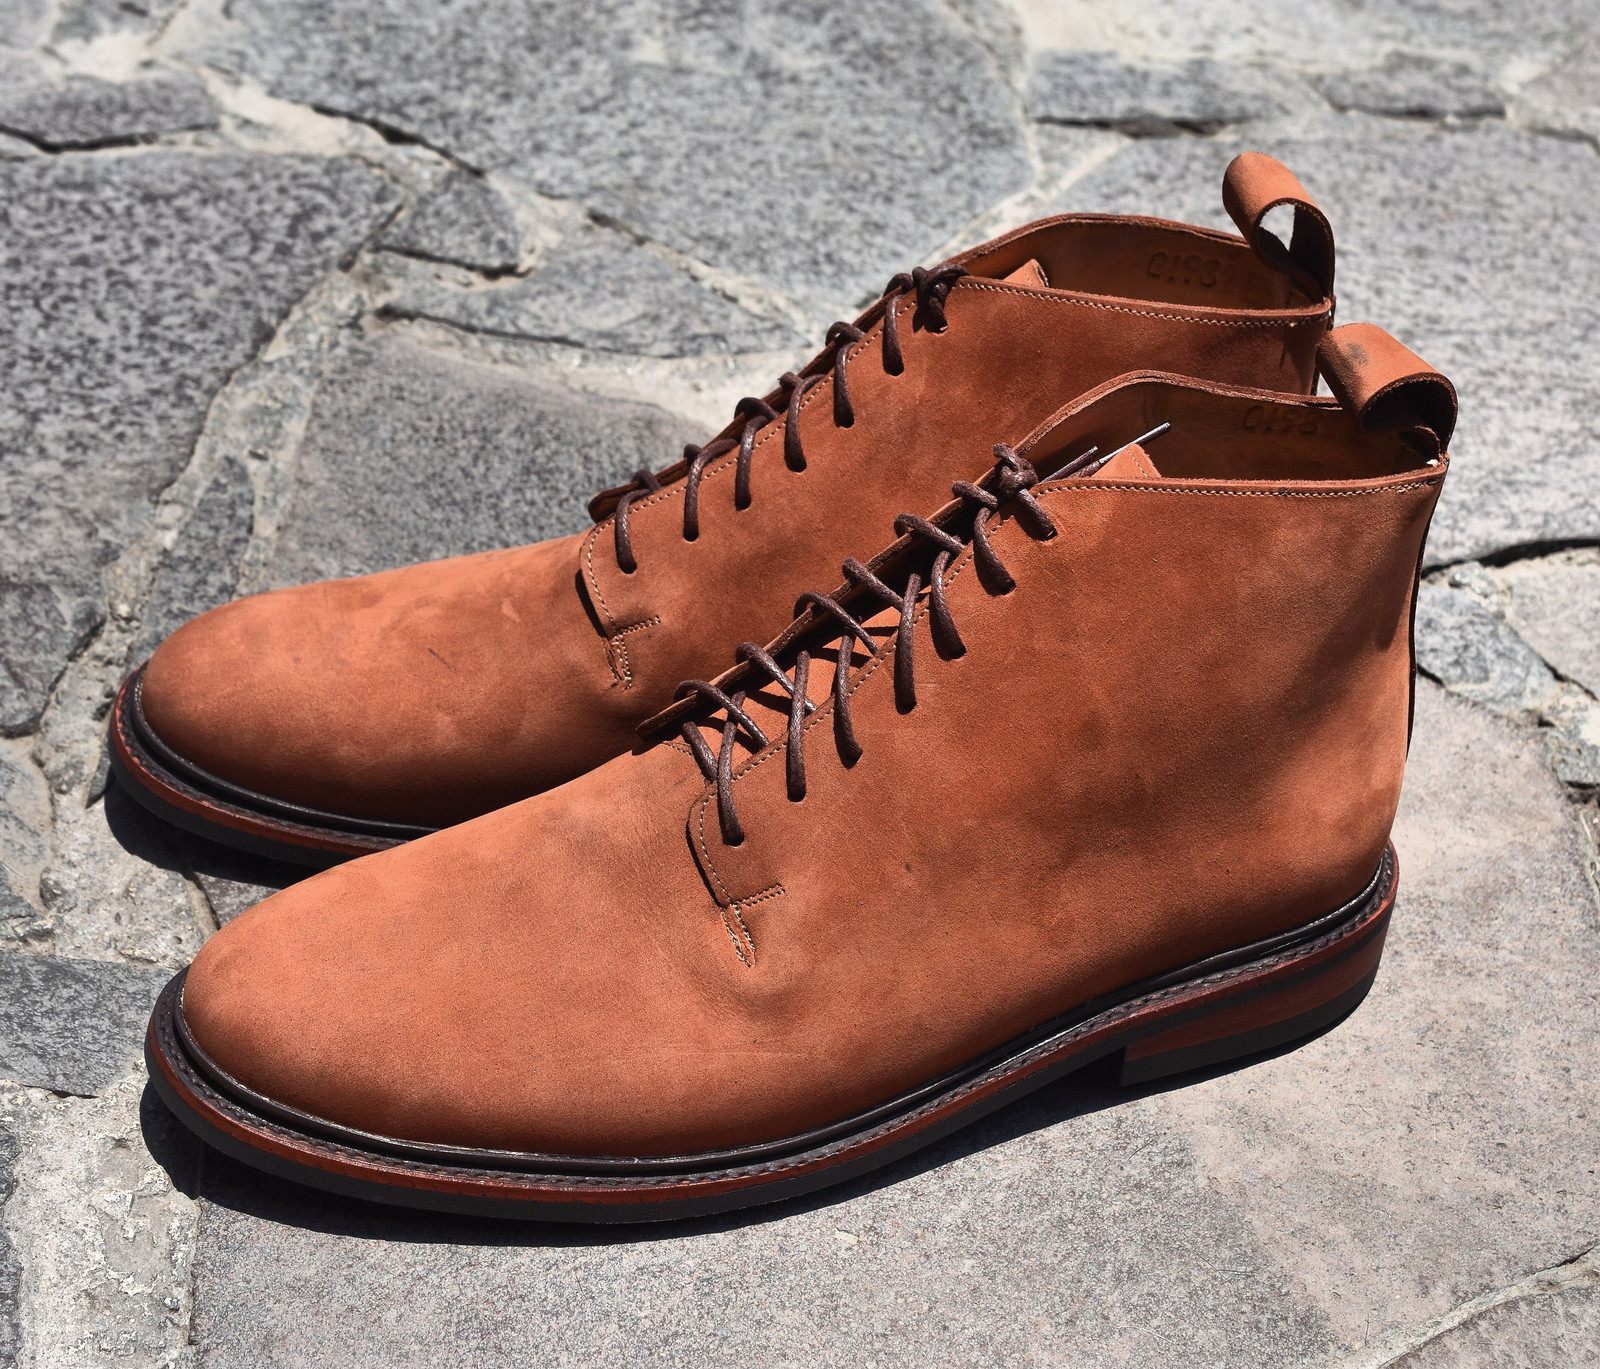 COPPER ROUGHOUT SB FOOT TANNING CO.